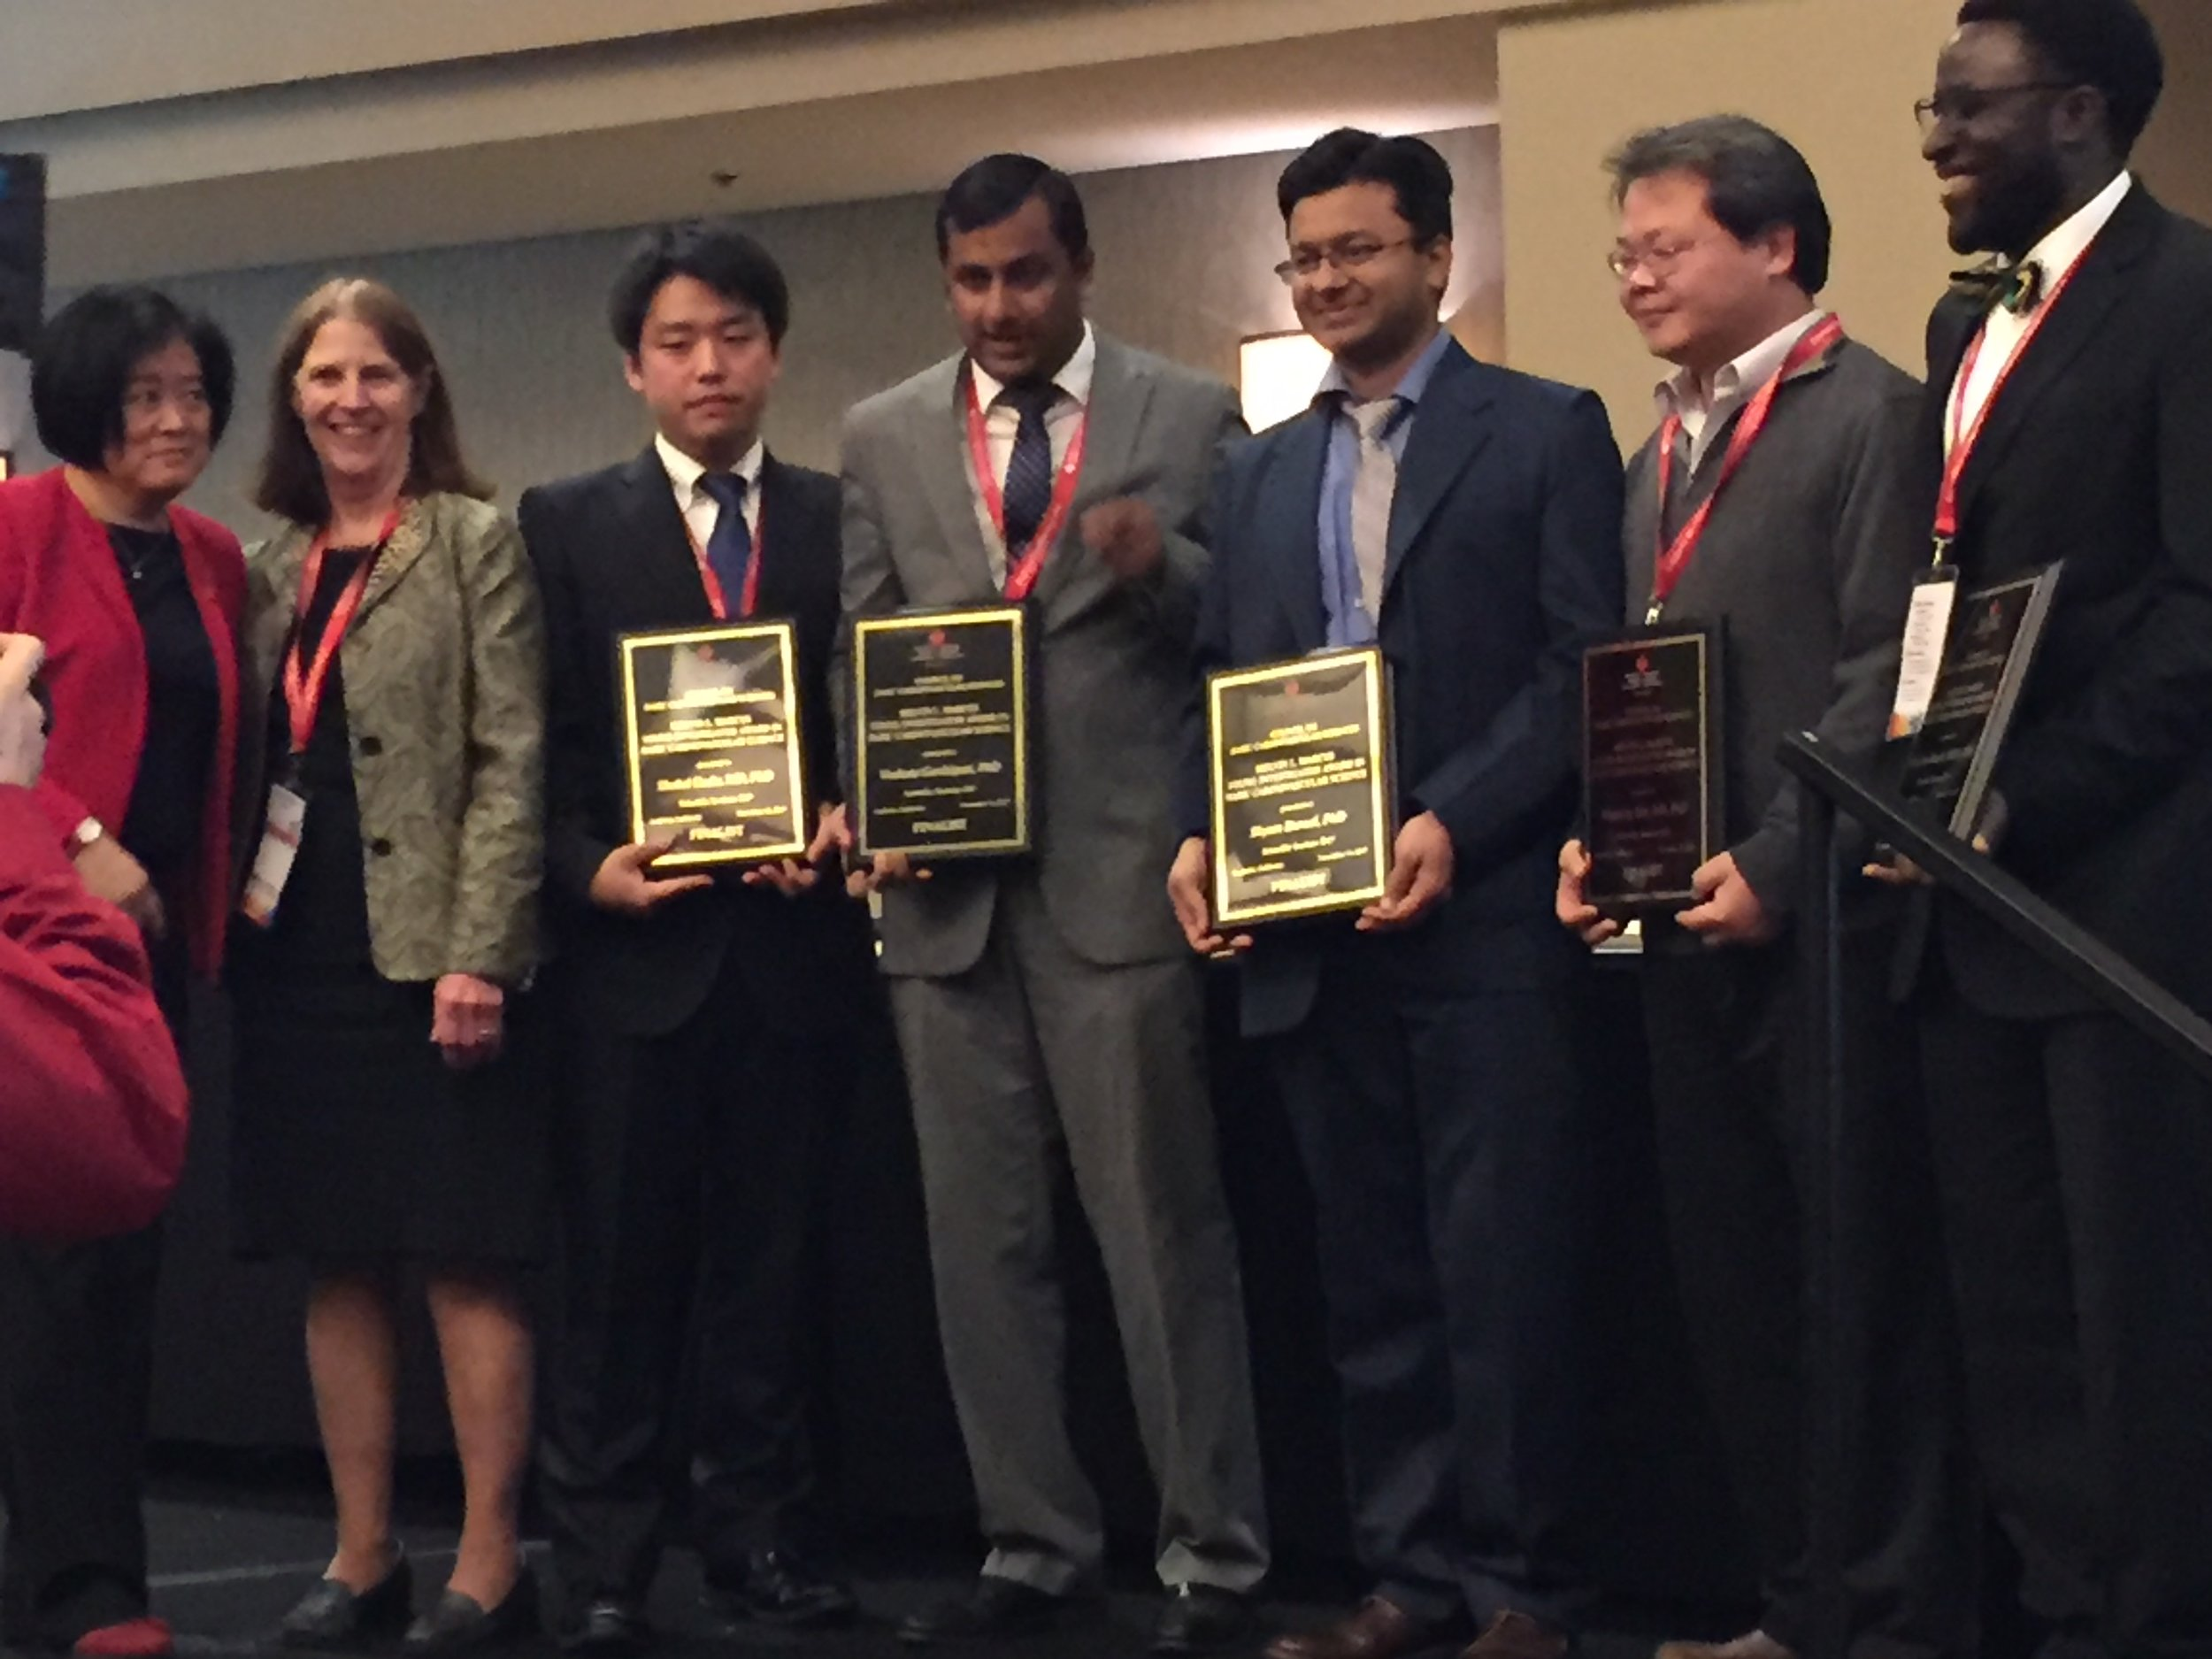 Dr. Ikeda (third from right) holding his finalist plaque.